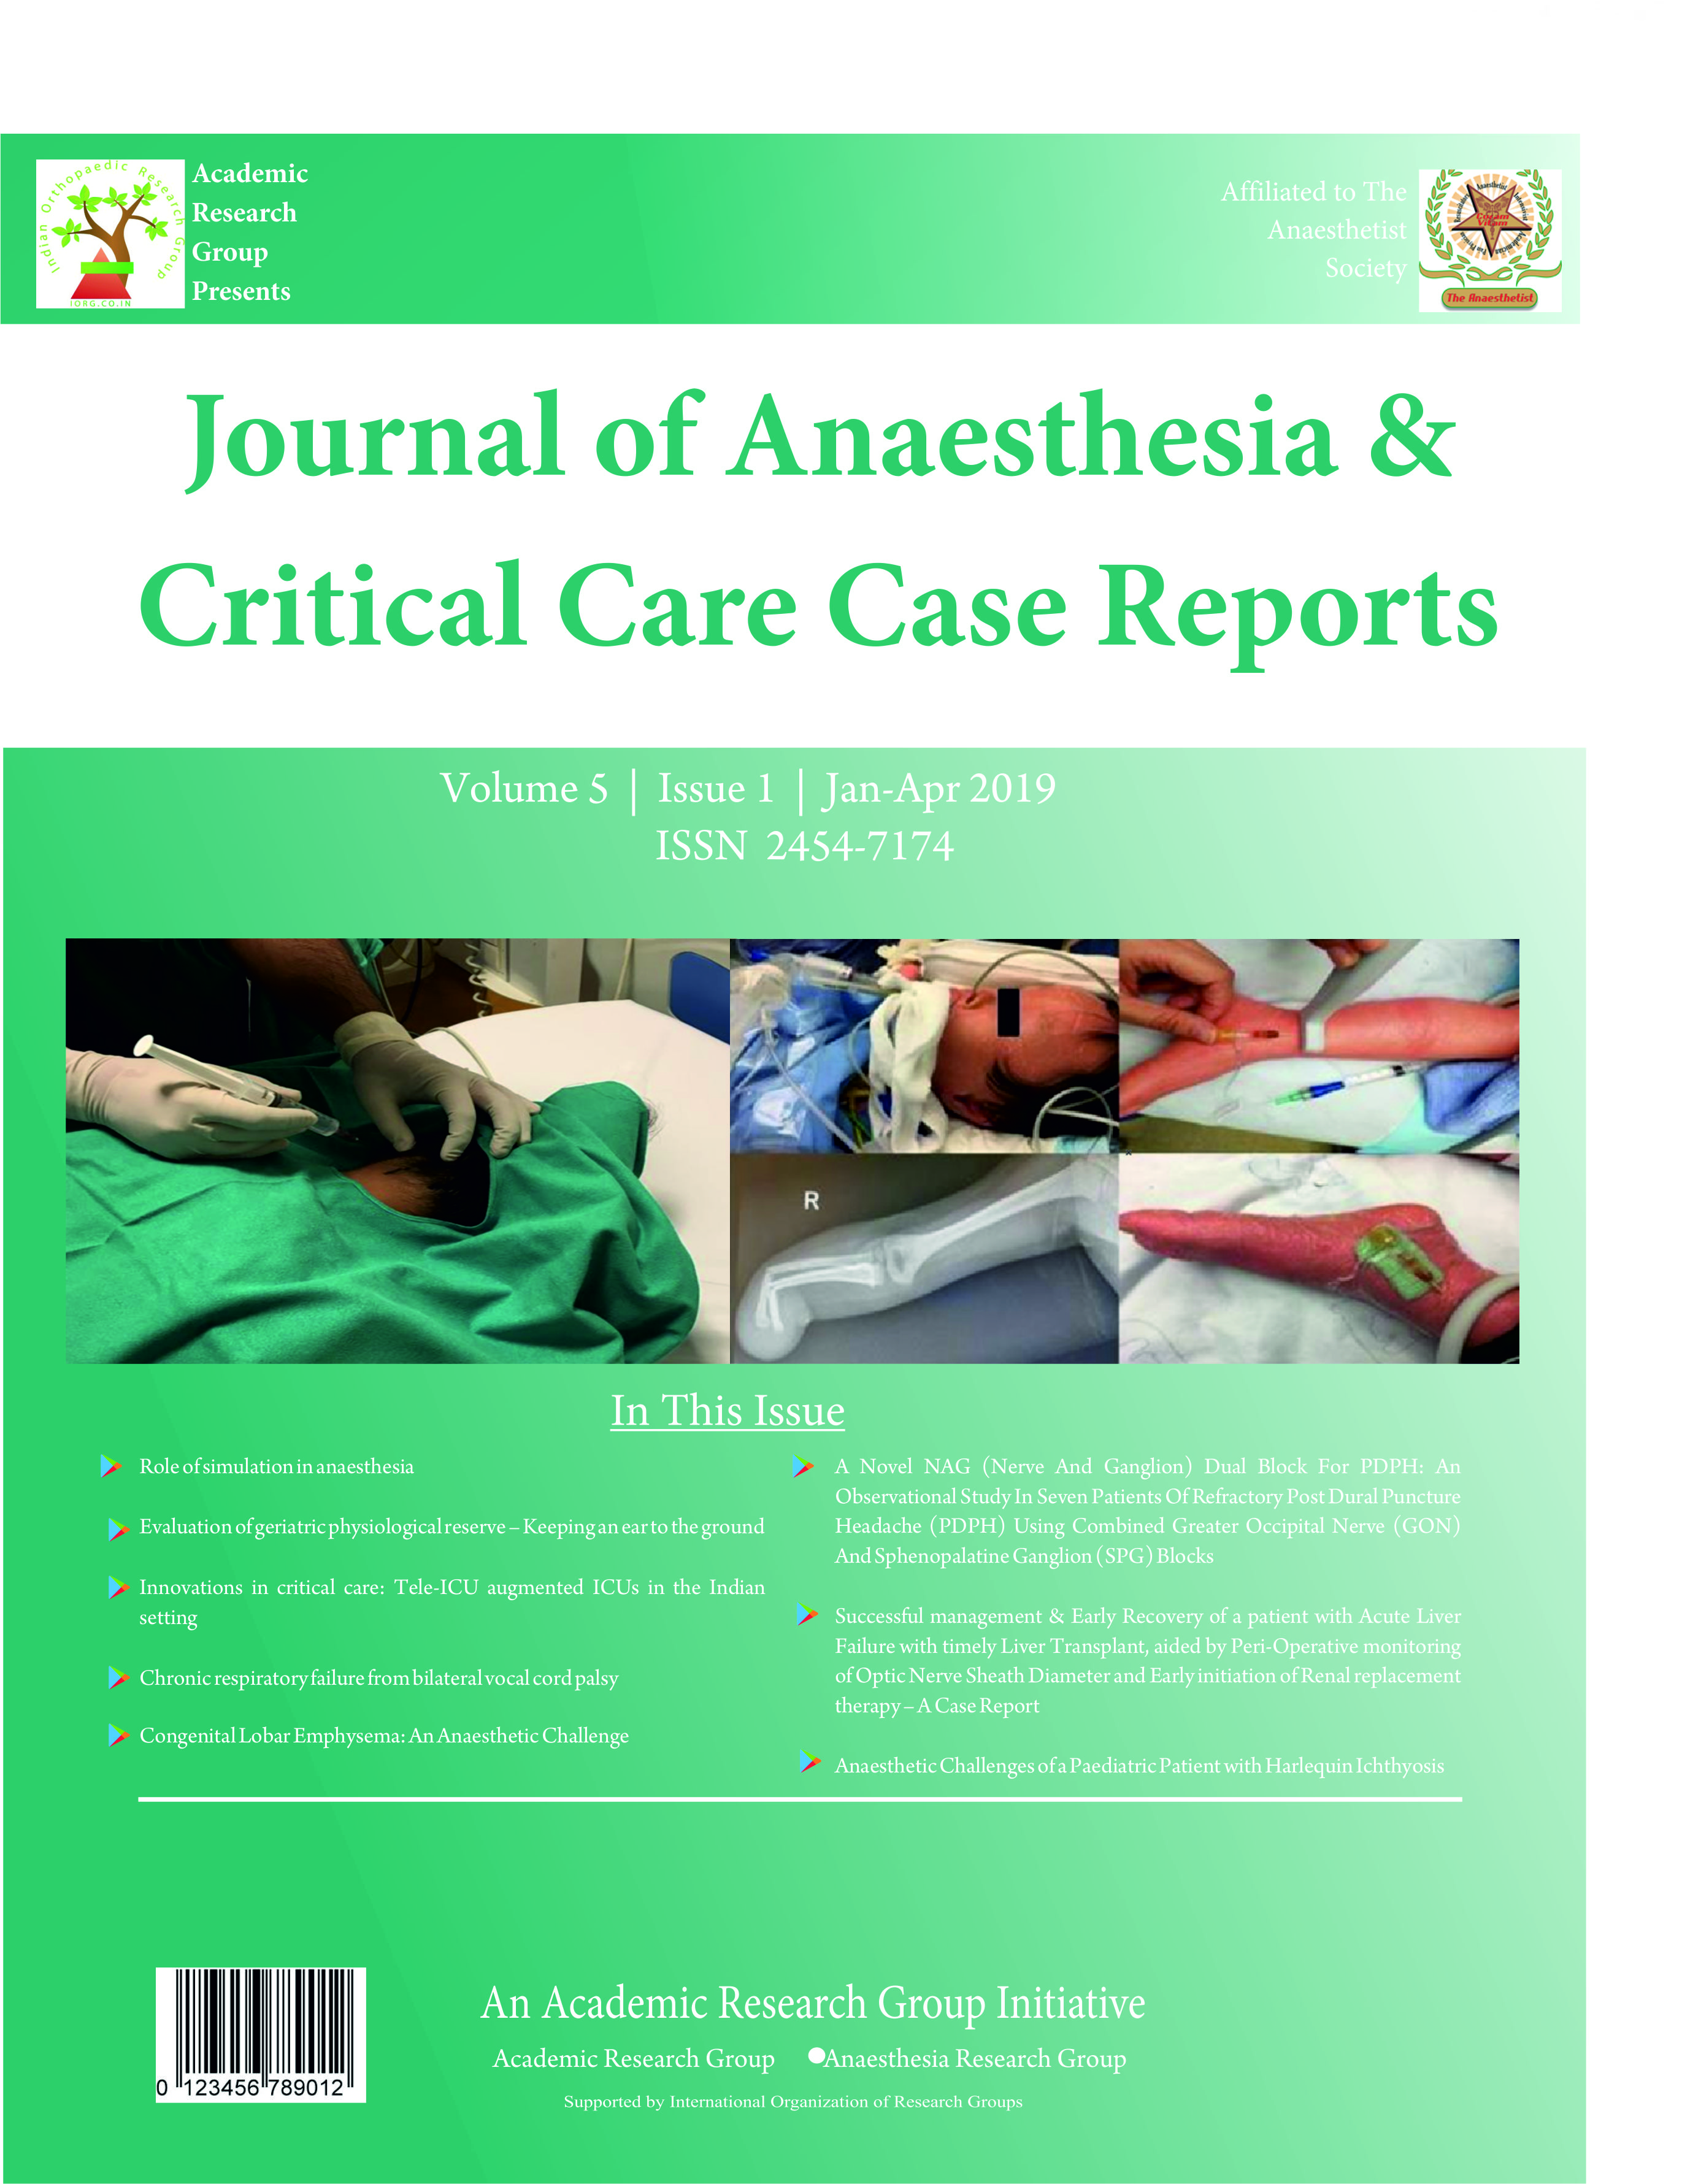 Journal of Anaesthesia & Critical Care Case Reports